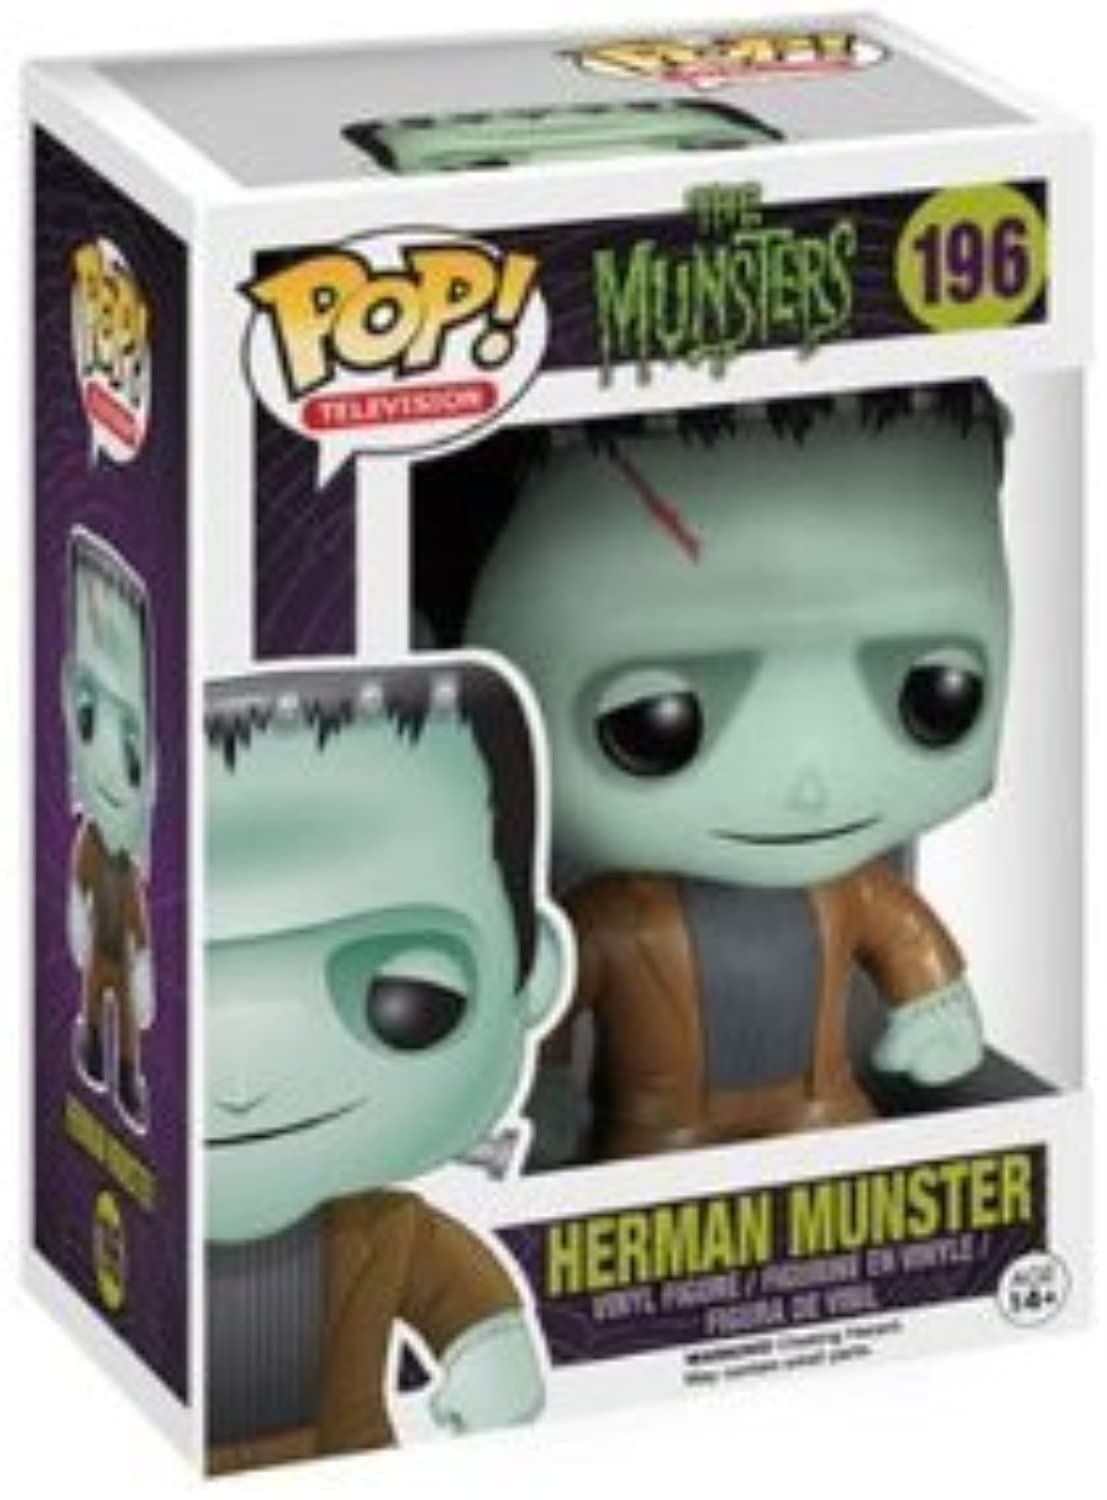 The Munsters - Funko Pop  - Herman 196 Collector's figure Standard by The Munsters